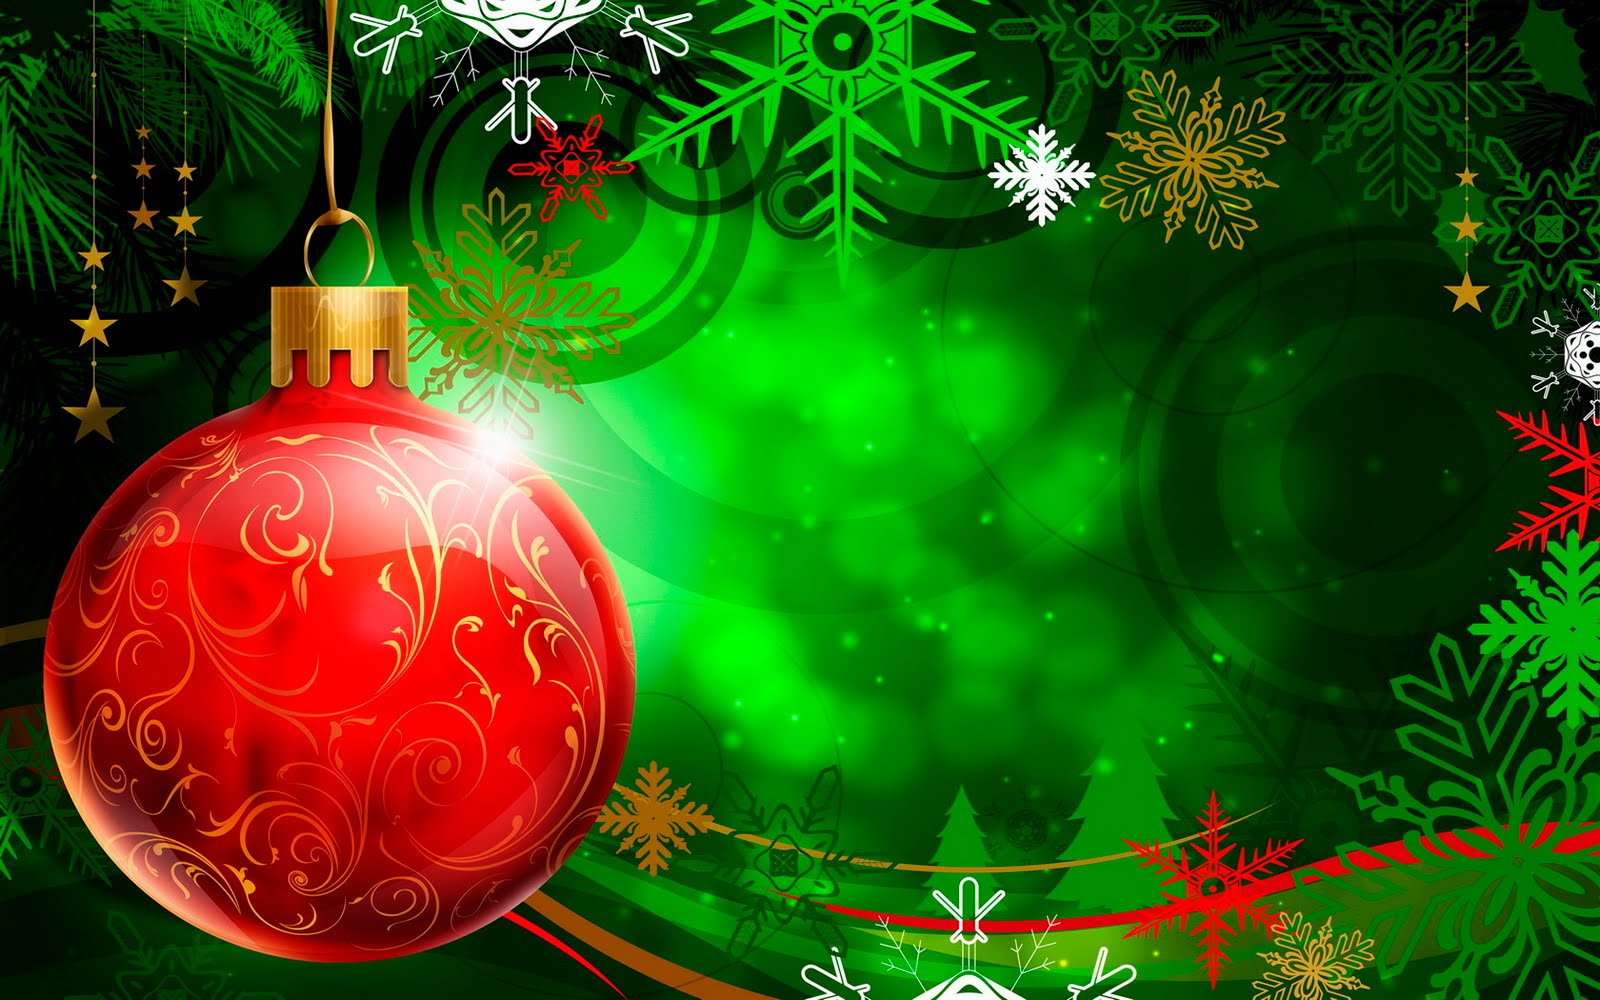 desktop pc wallpapers download christmas 2010 wallpaper christmas 1600x1000